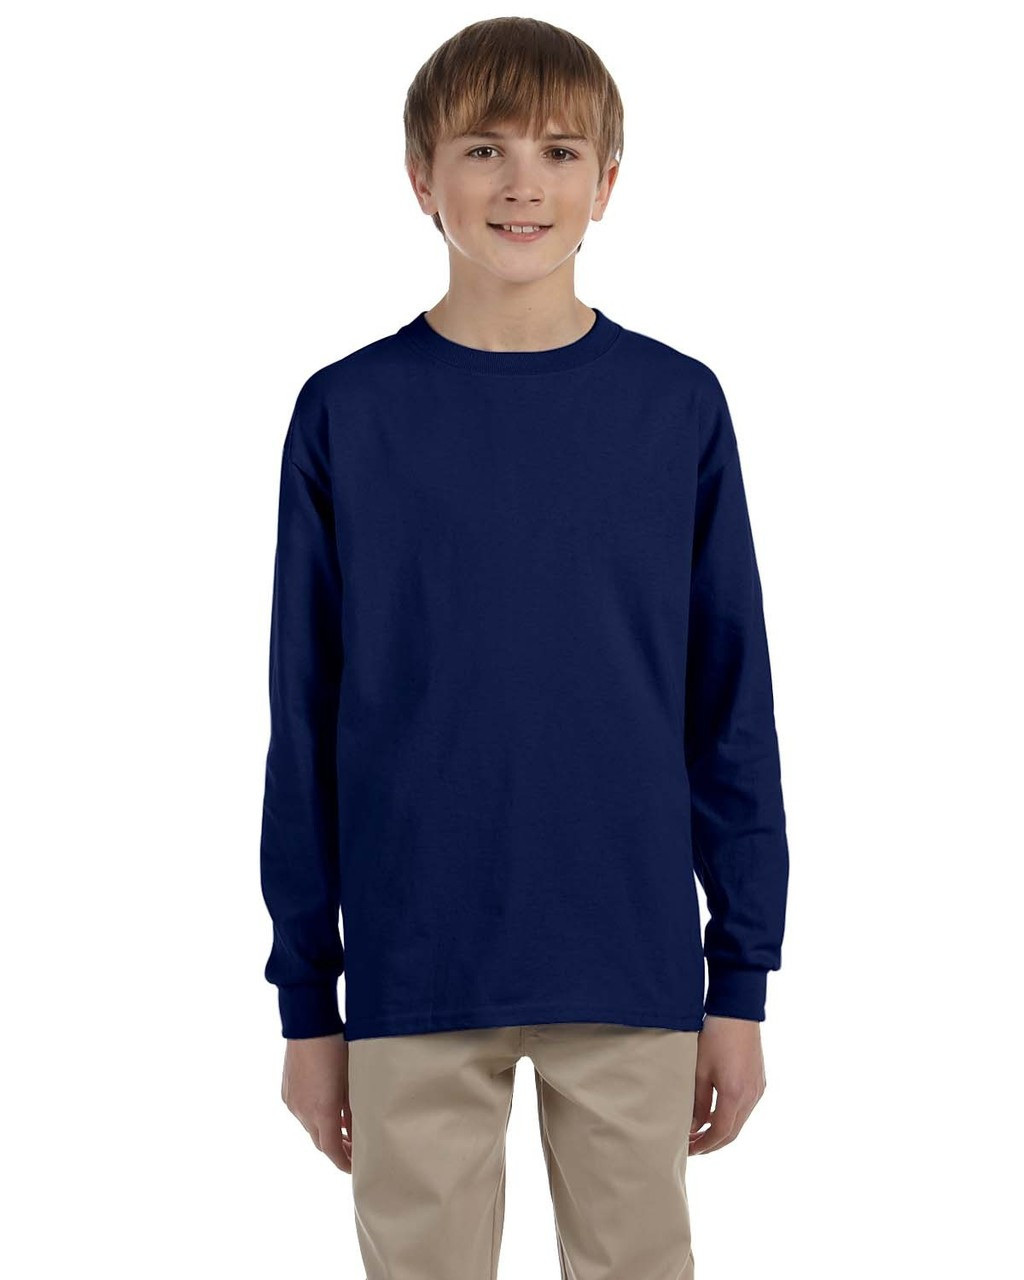 Navy - G240B Ultra Cotton Youth Long Sleeve T-Shirt | Blankclothing.ca